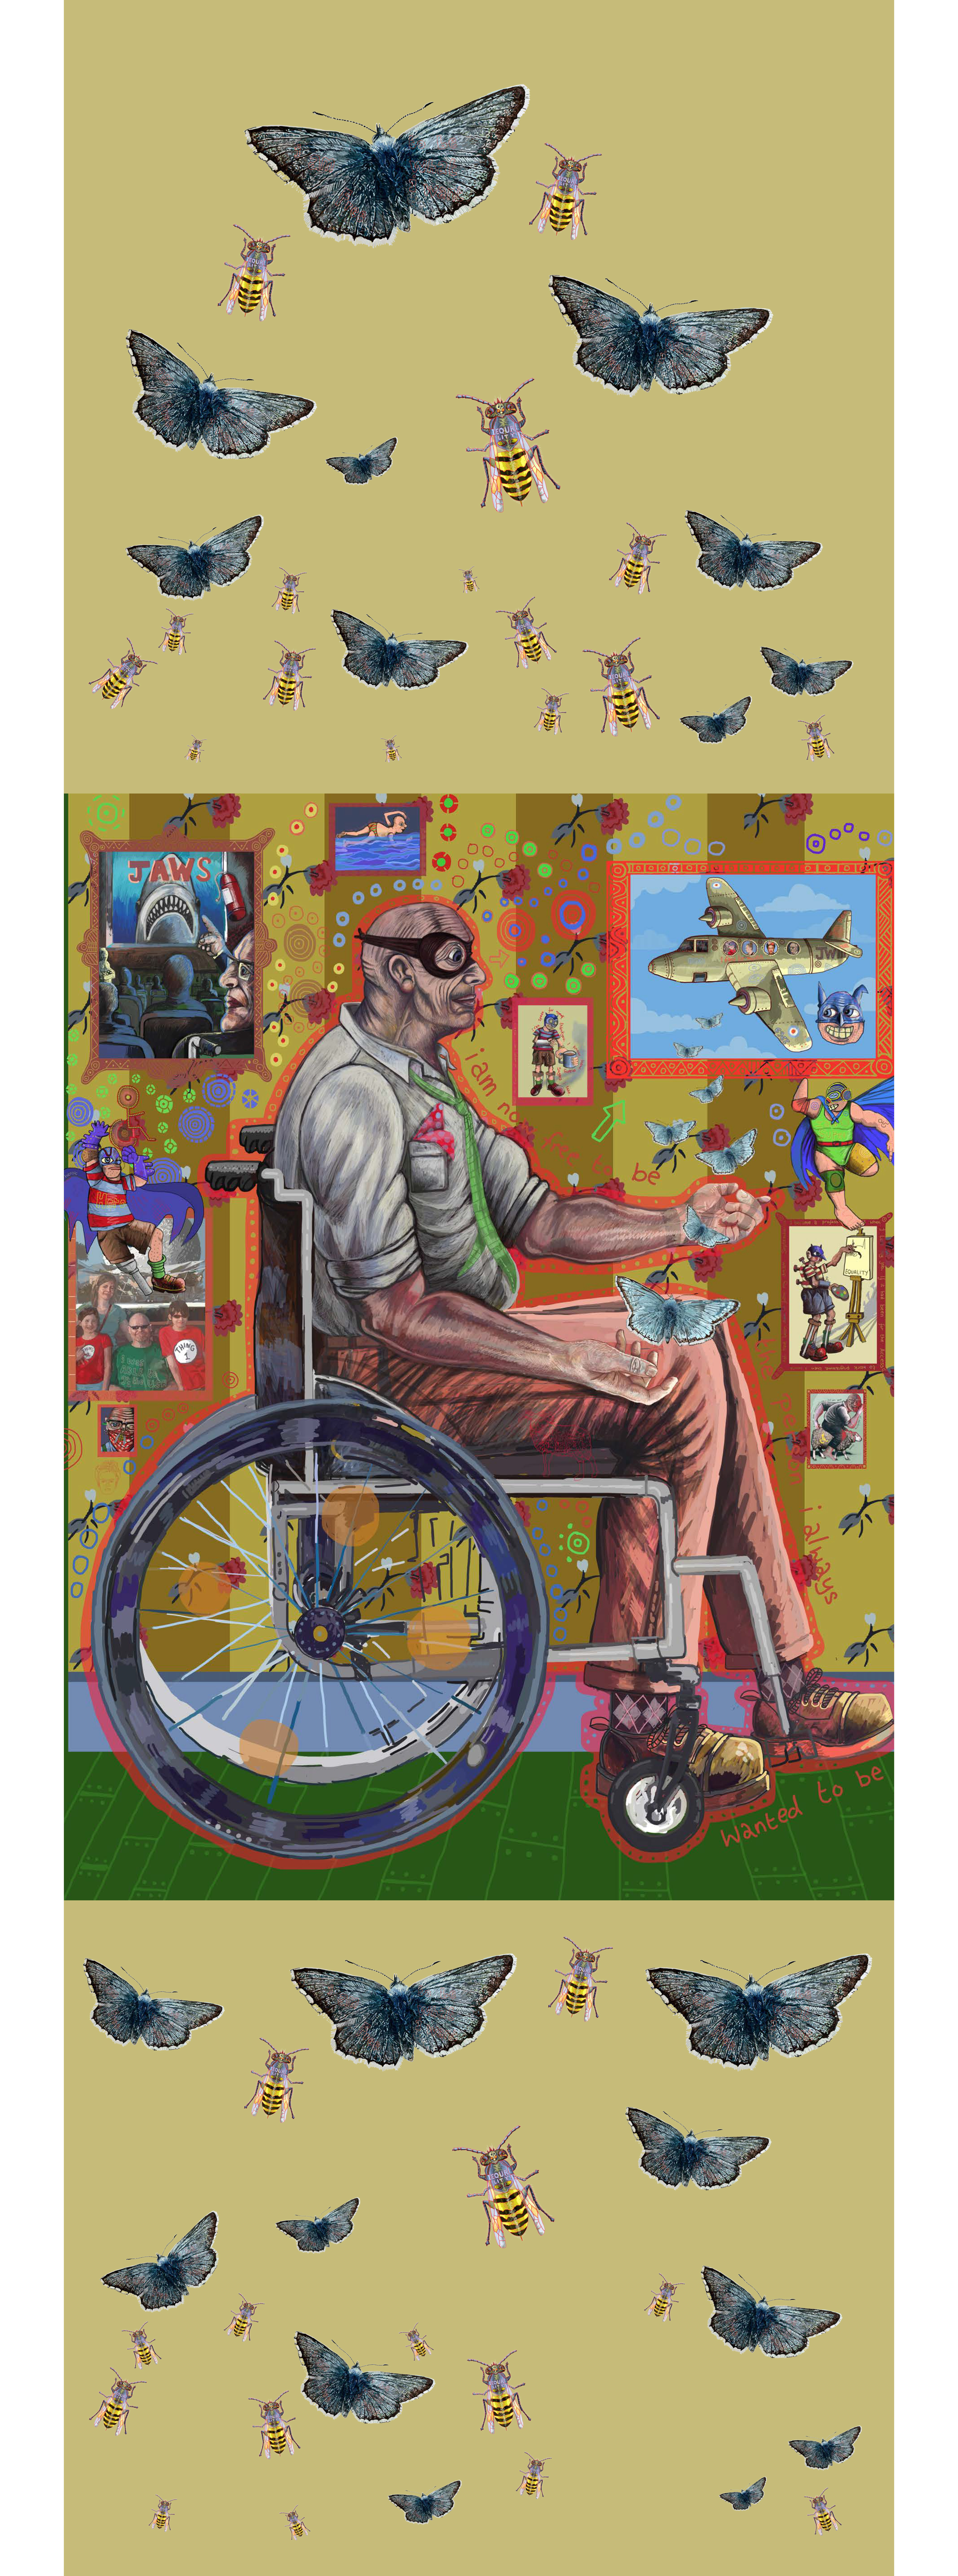 1995 DDA commemorative banner, Jason Wilsher-Mills. Features cartoonish and dreamlike emblems and memorabilia floating around a central figure who sits in a wheelchair, wearing a mask